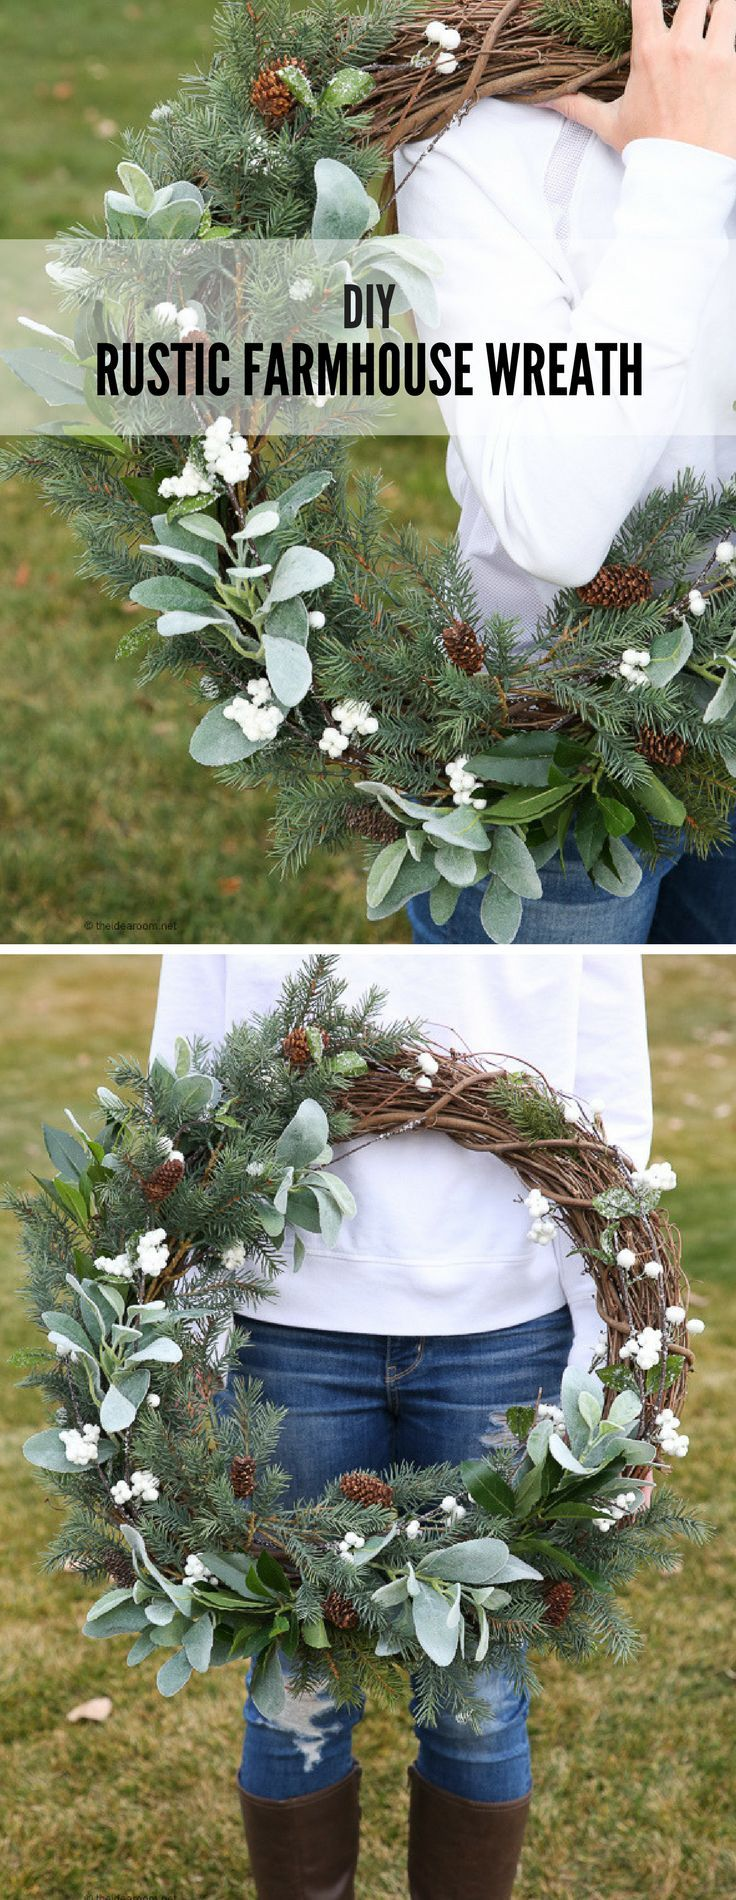 Learn how to make a Rustic Farmhouse Wreath with this simple Step-by-step tutorial! This wreath is a simple yet fresh wreath perfect for your winter decor!